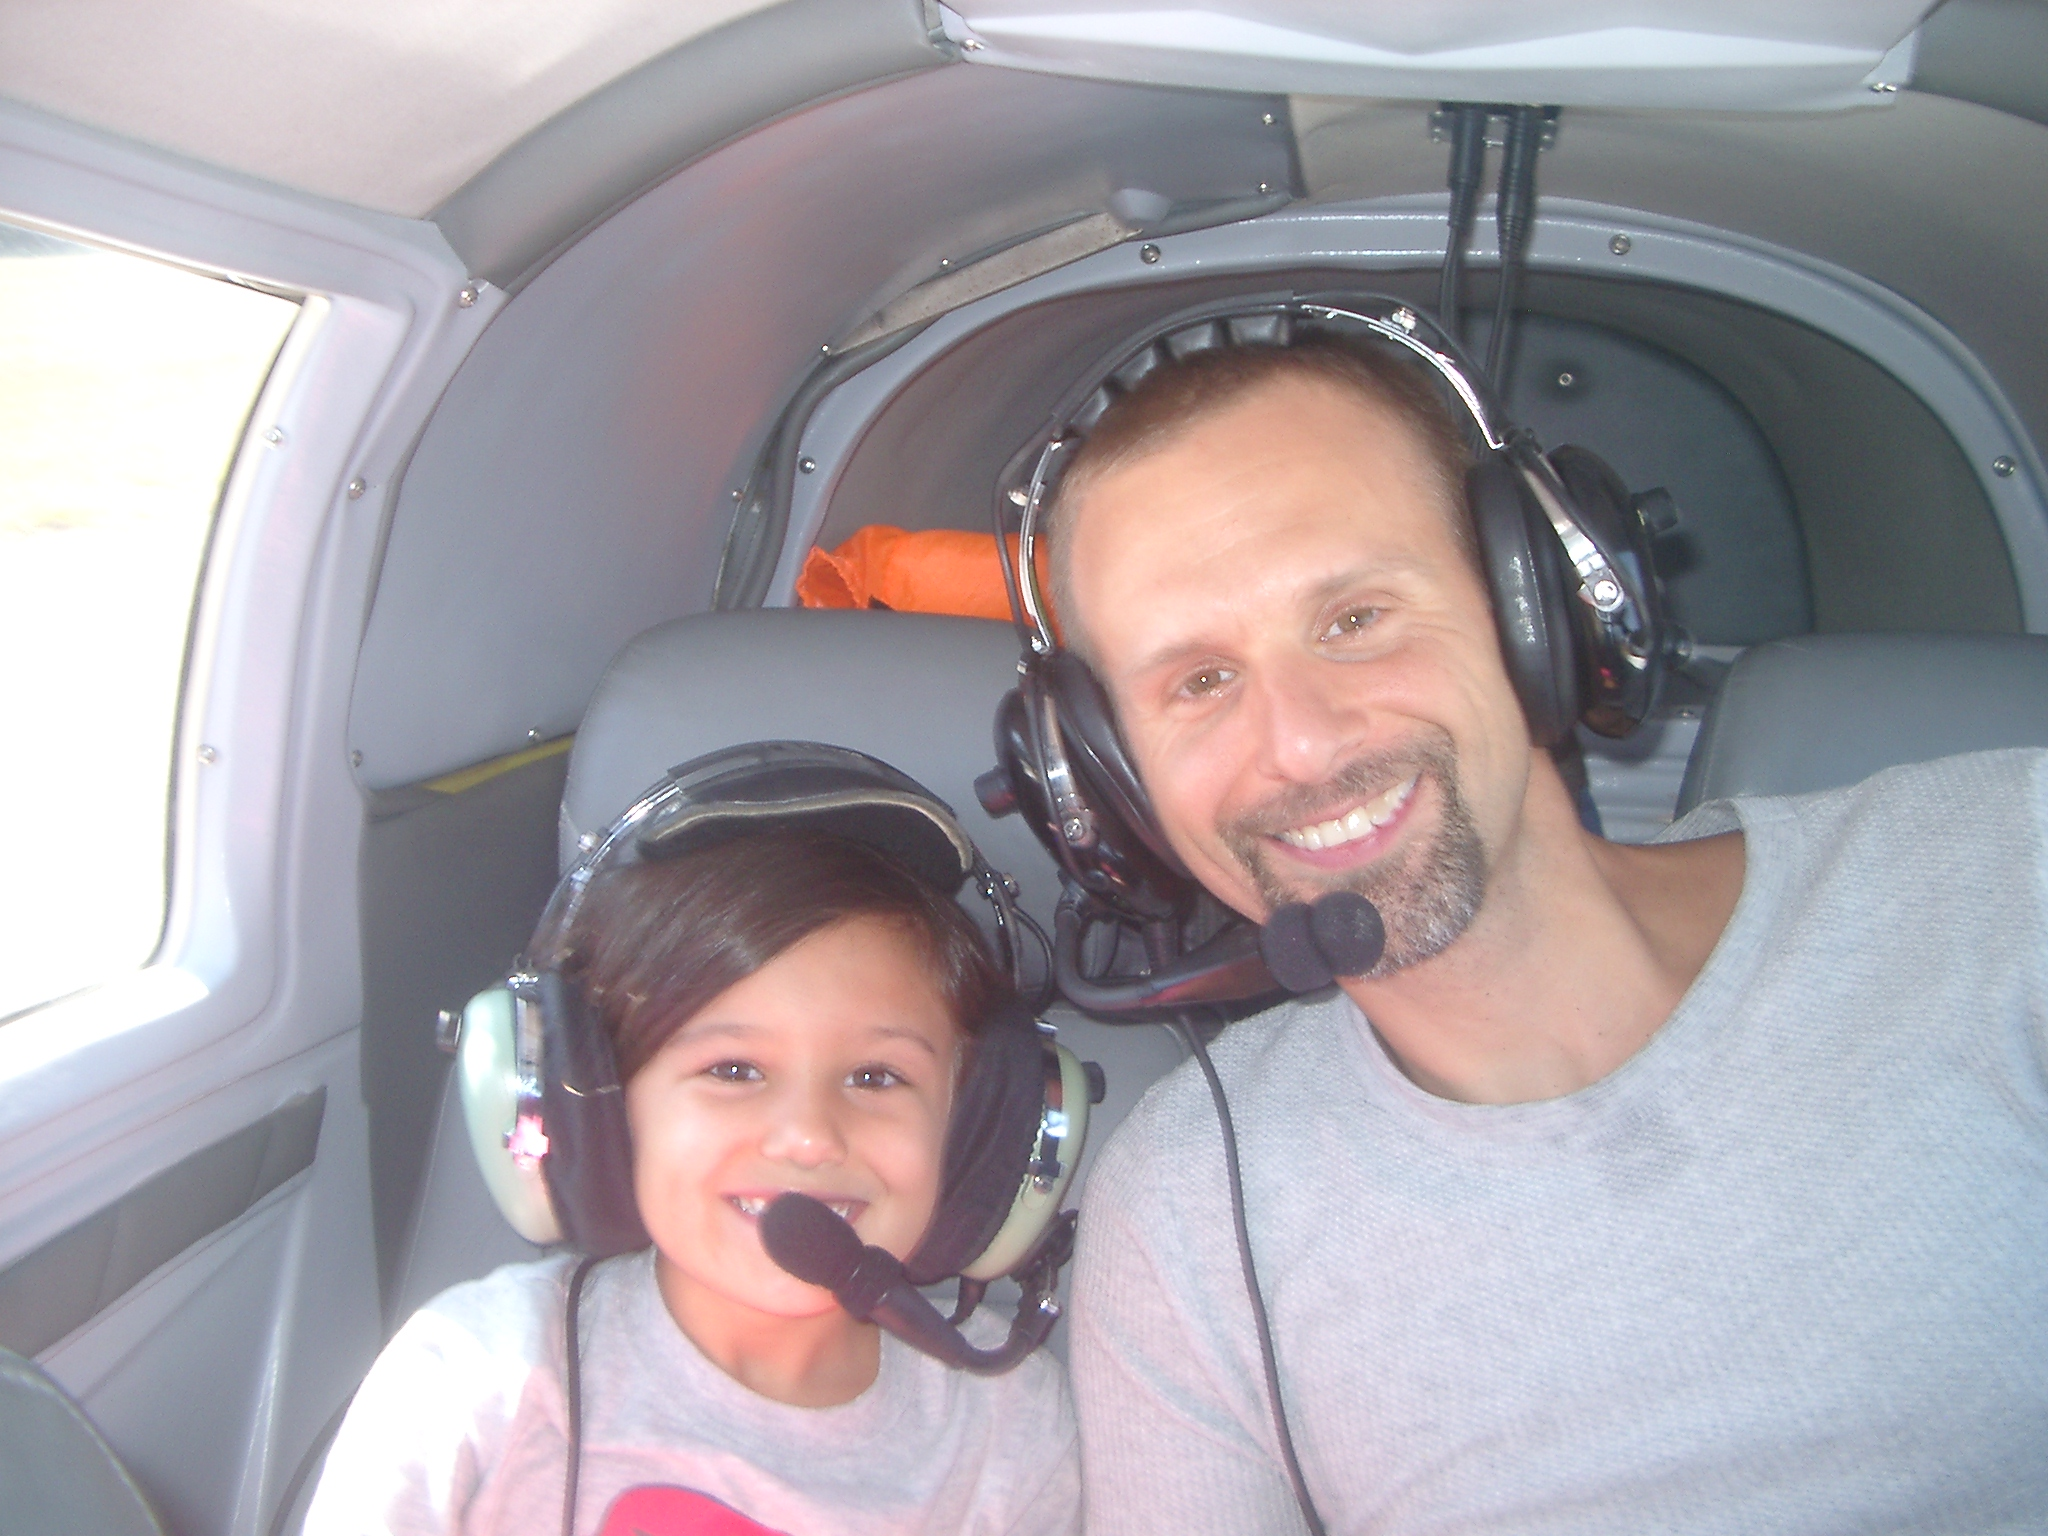 pilot-charles-george-flying-passenger-chris-n-and-his-daughter-christina